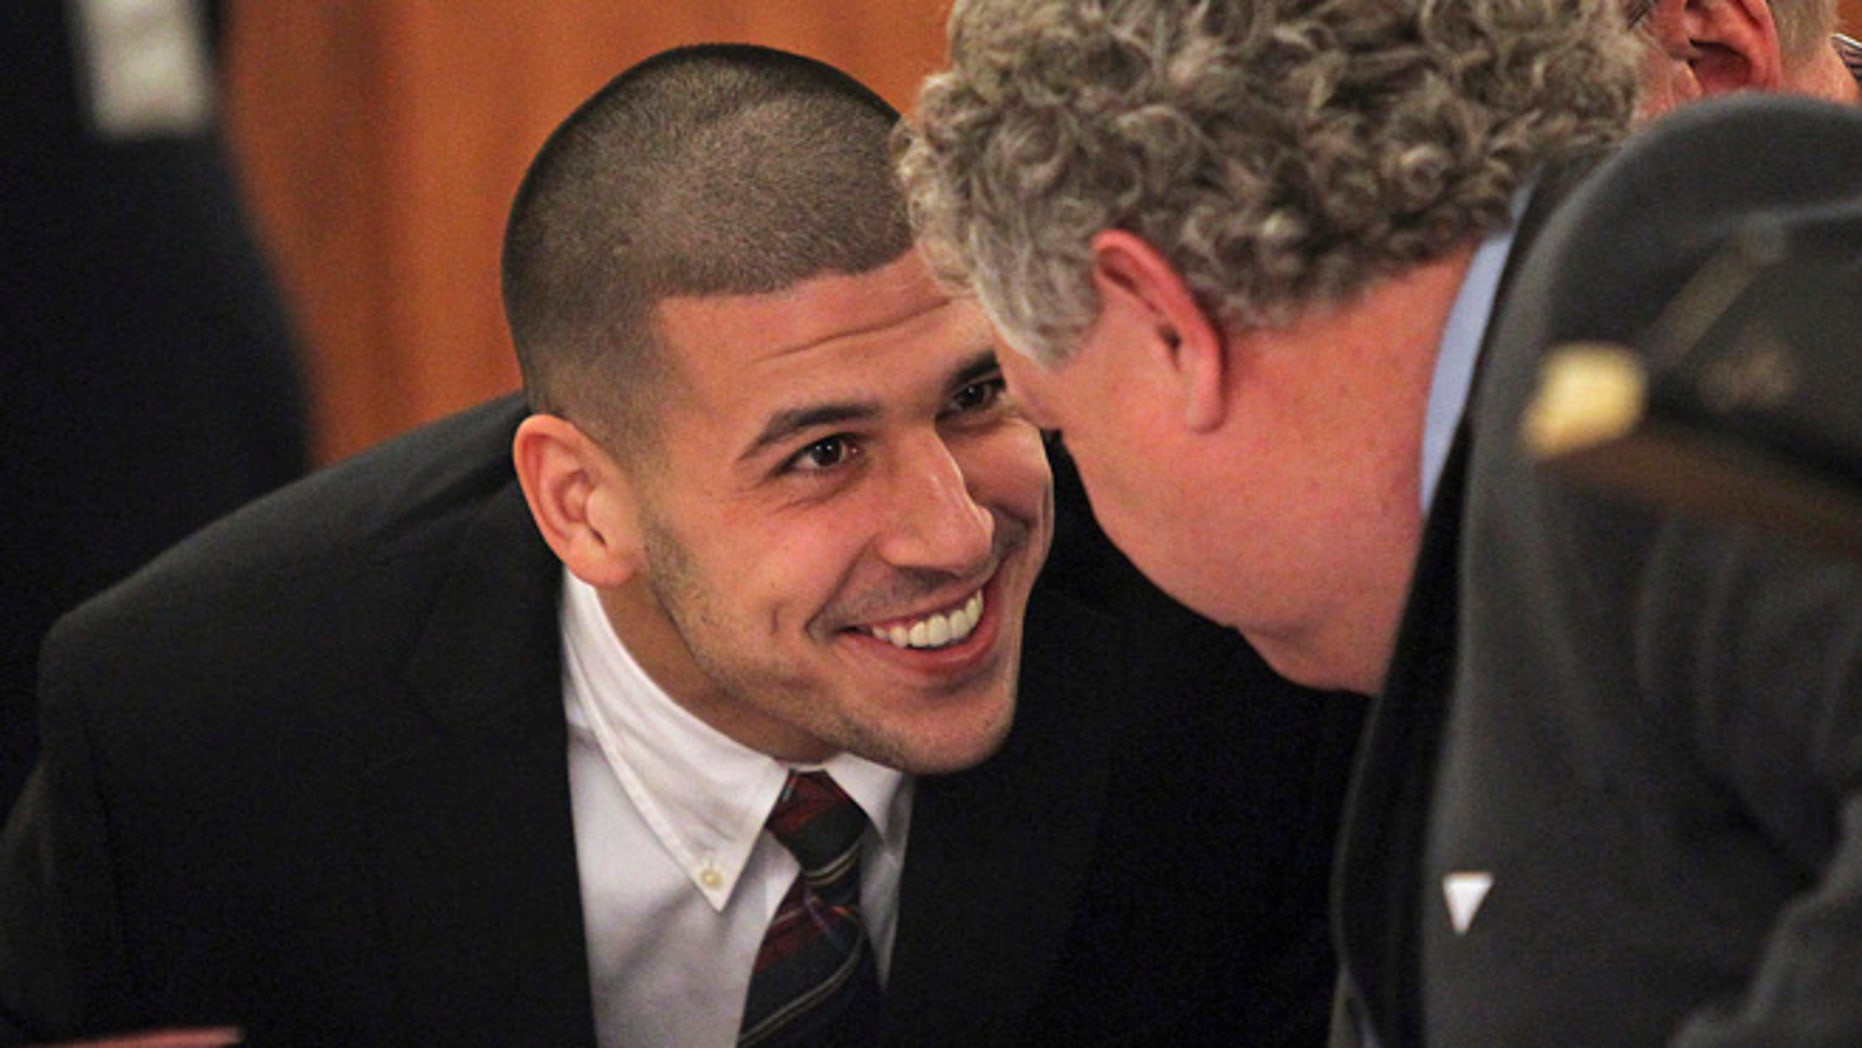 FILE 2013: Former New England Patriots player Aaron Hernandez smiles at his defense attorney Michael Fee  as he appears in court at the Fall River Justice Center in Fall River, Mass.